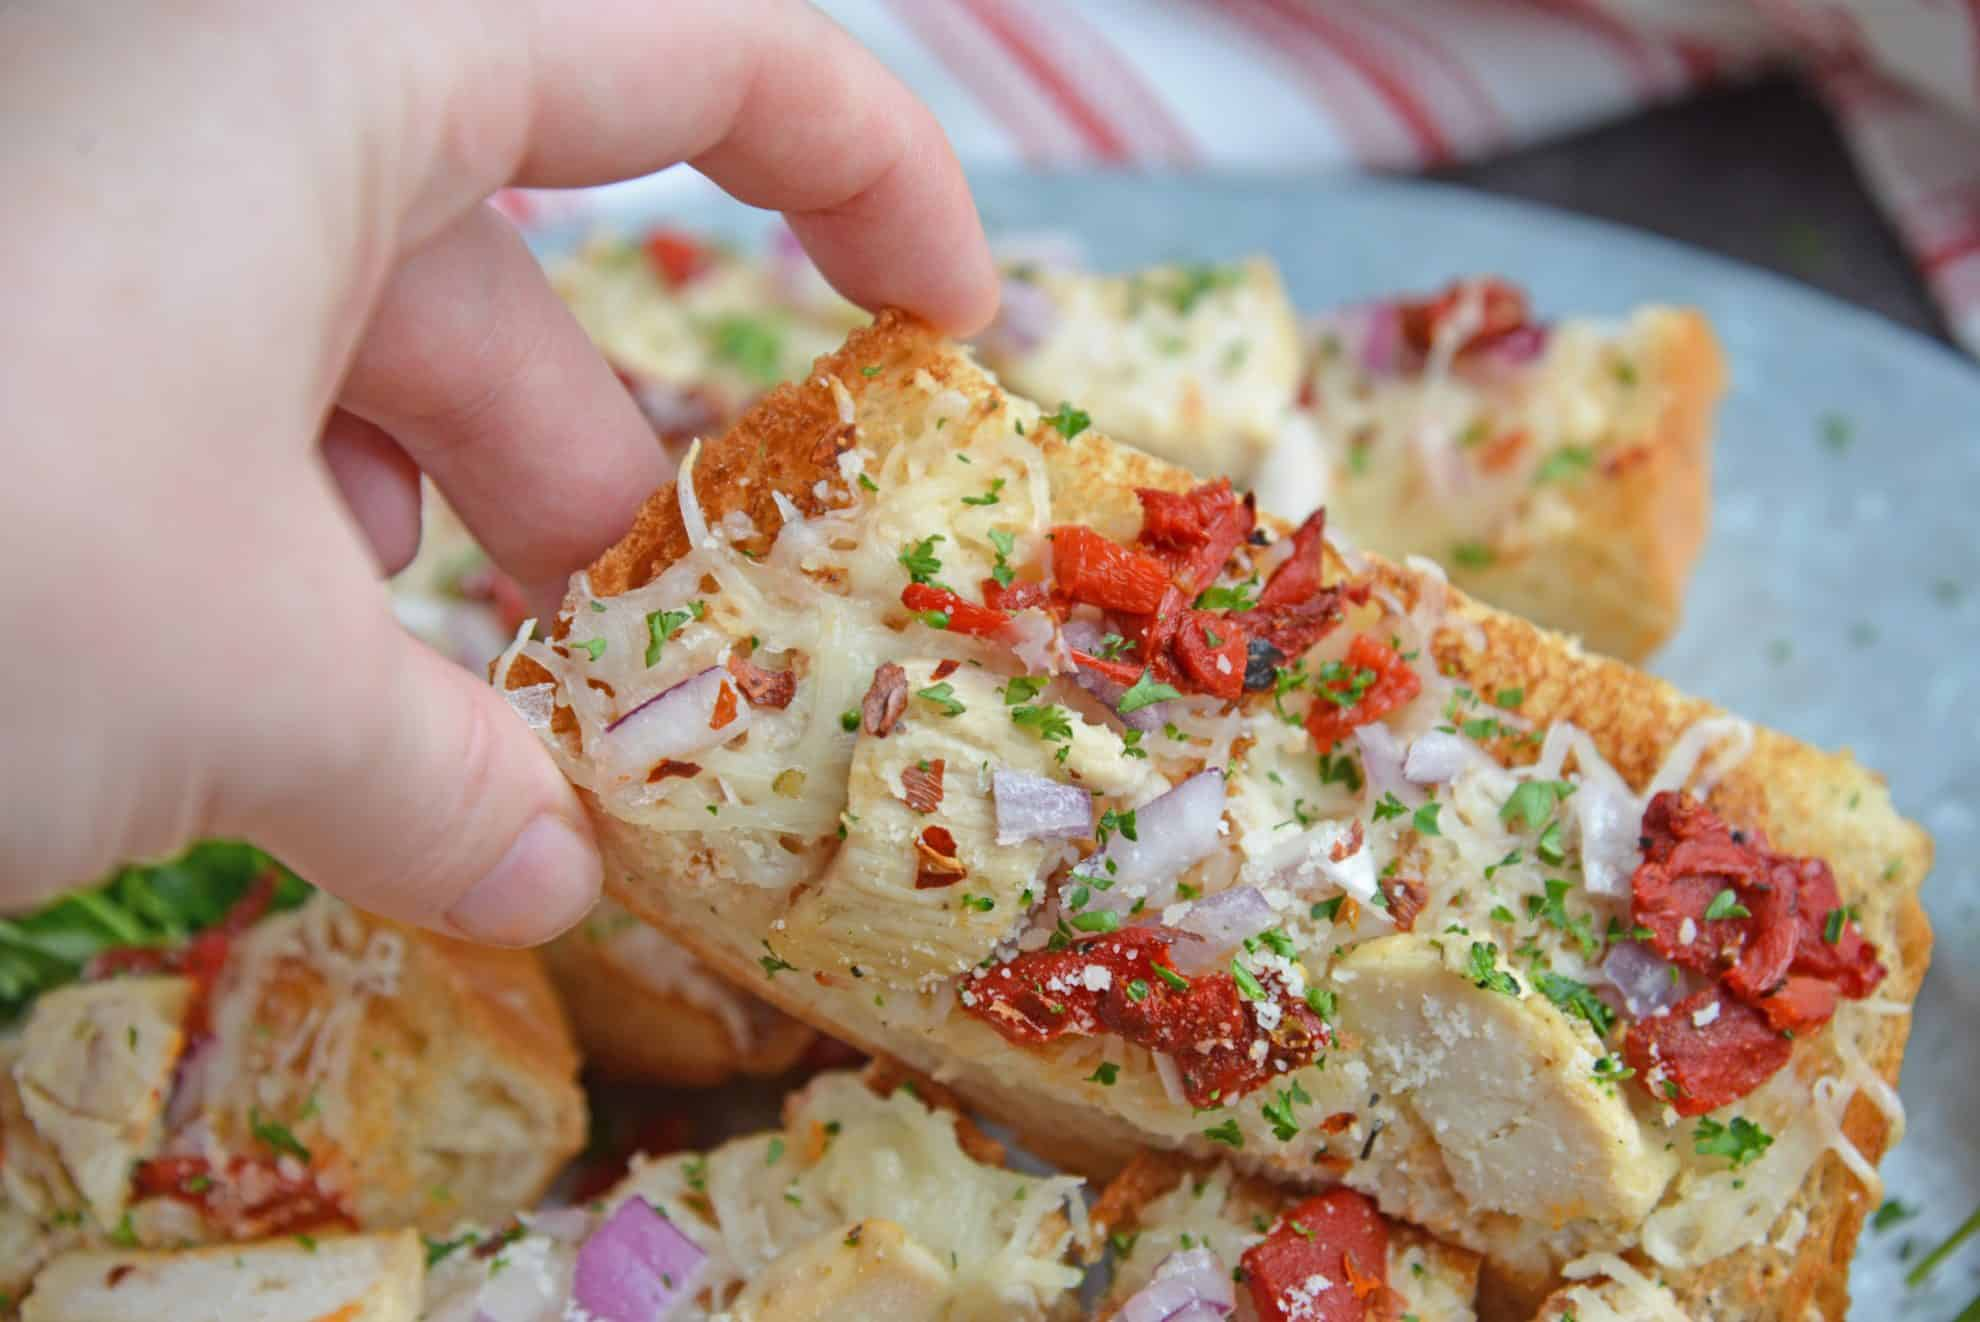 hand reaching in for a slice of french bread pizza